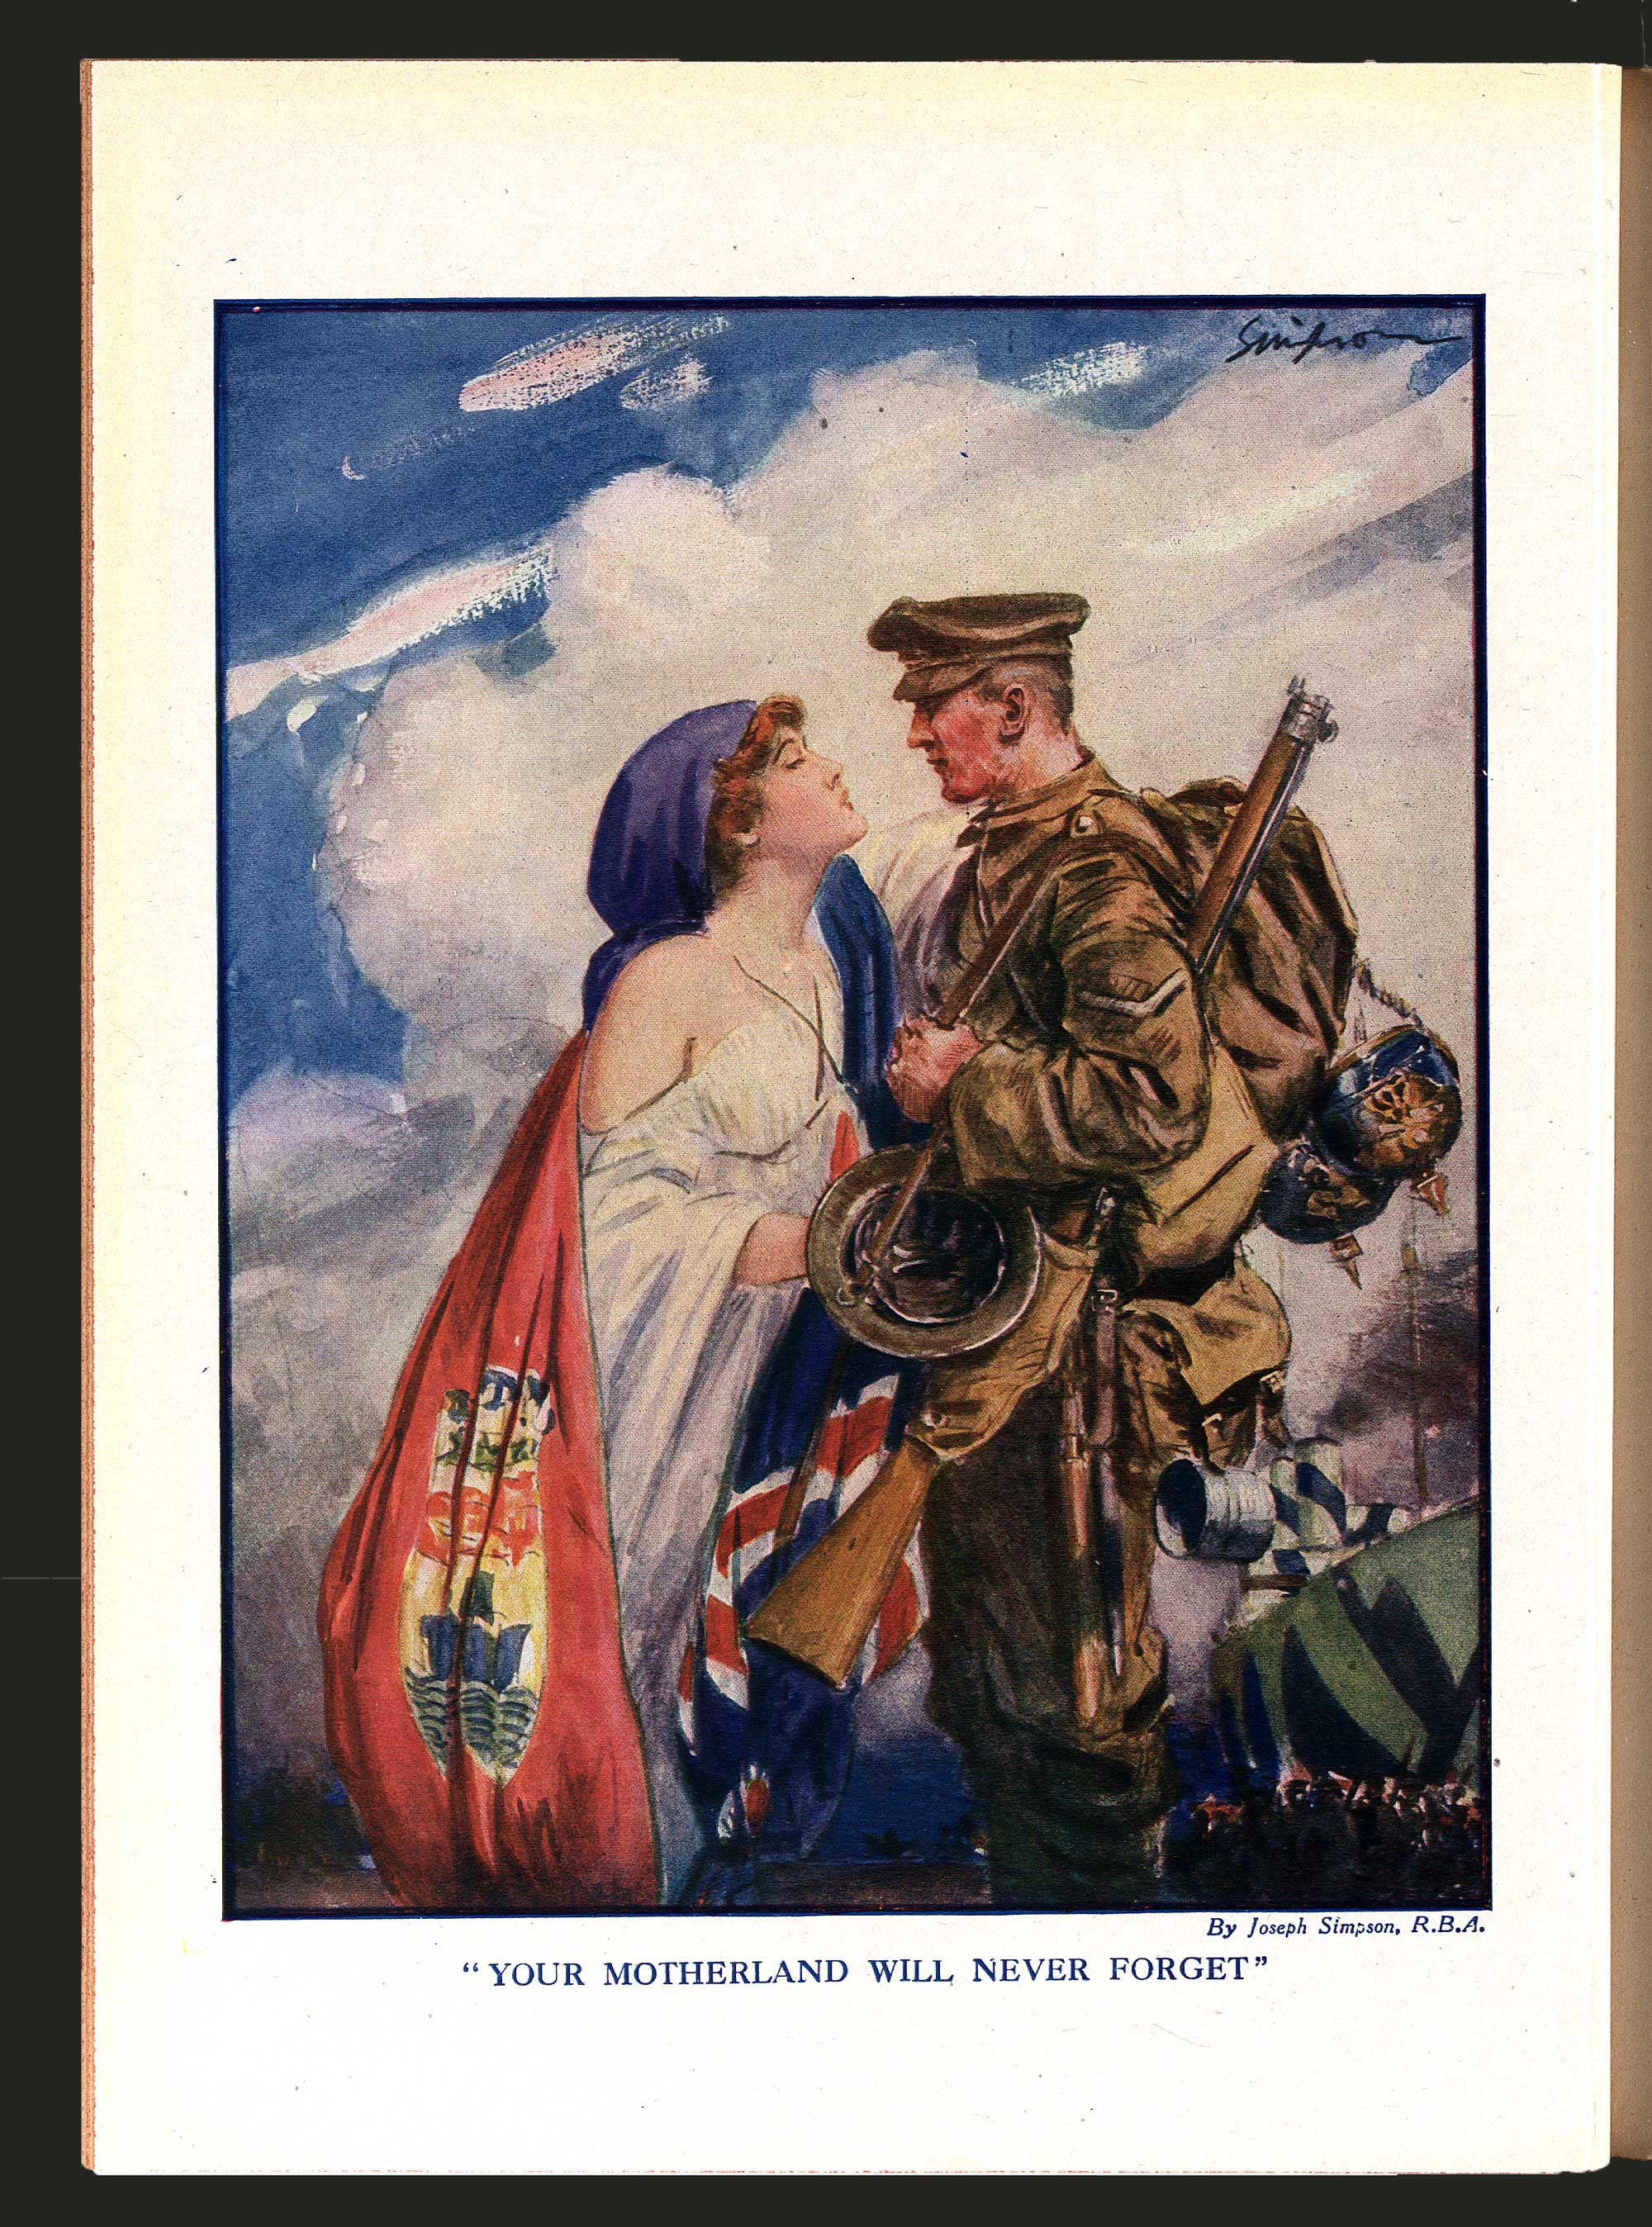 Illustration from 'Canada in Khaki', a journal published to celebrate Canadians' actions on the Front and raise money for the Canadian War Memorial Fund.